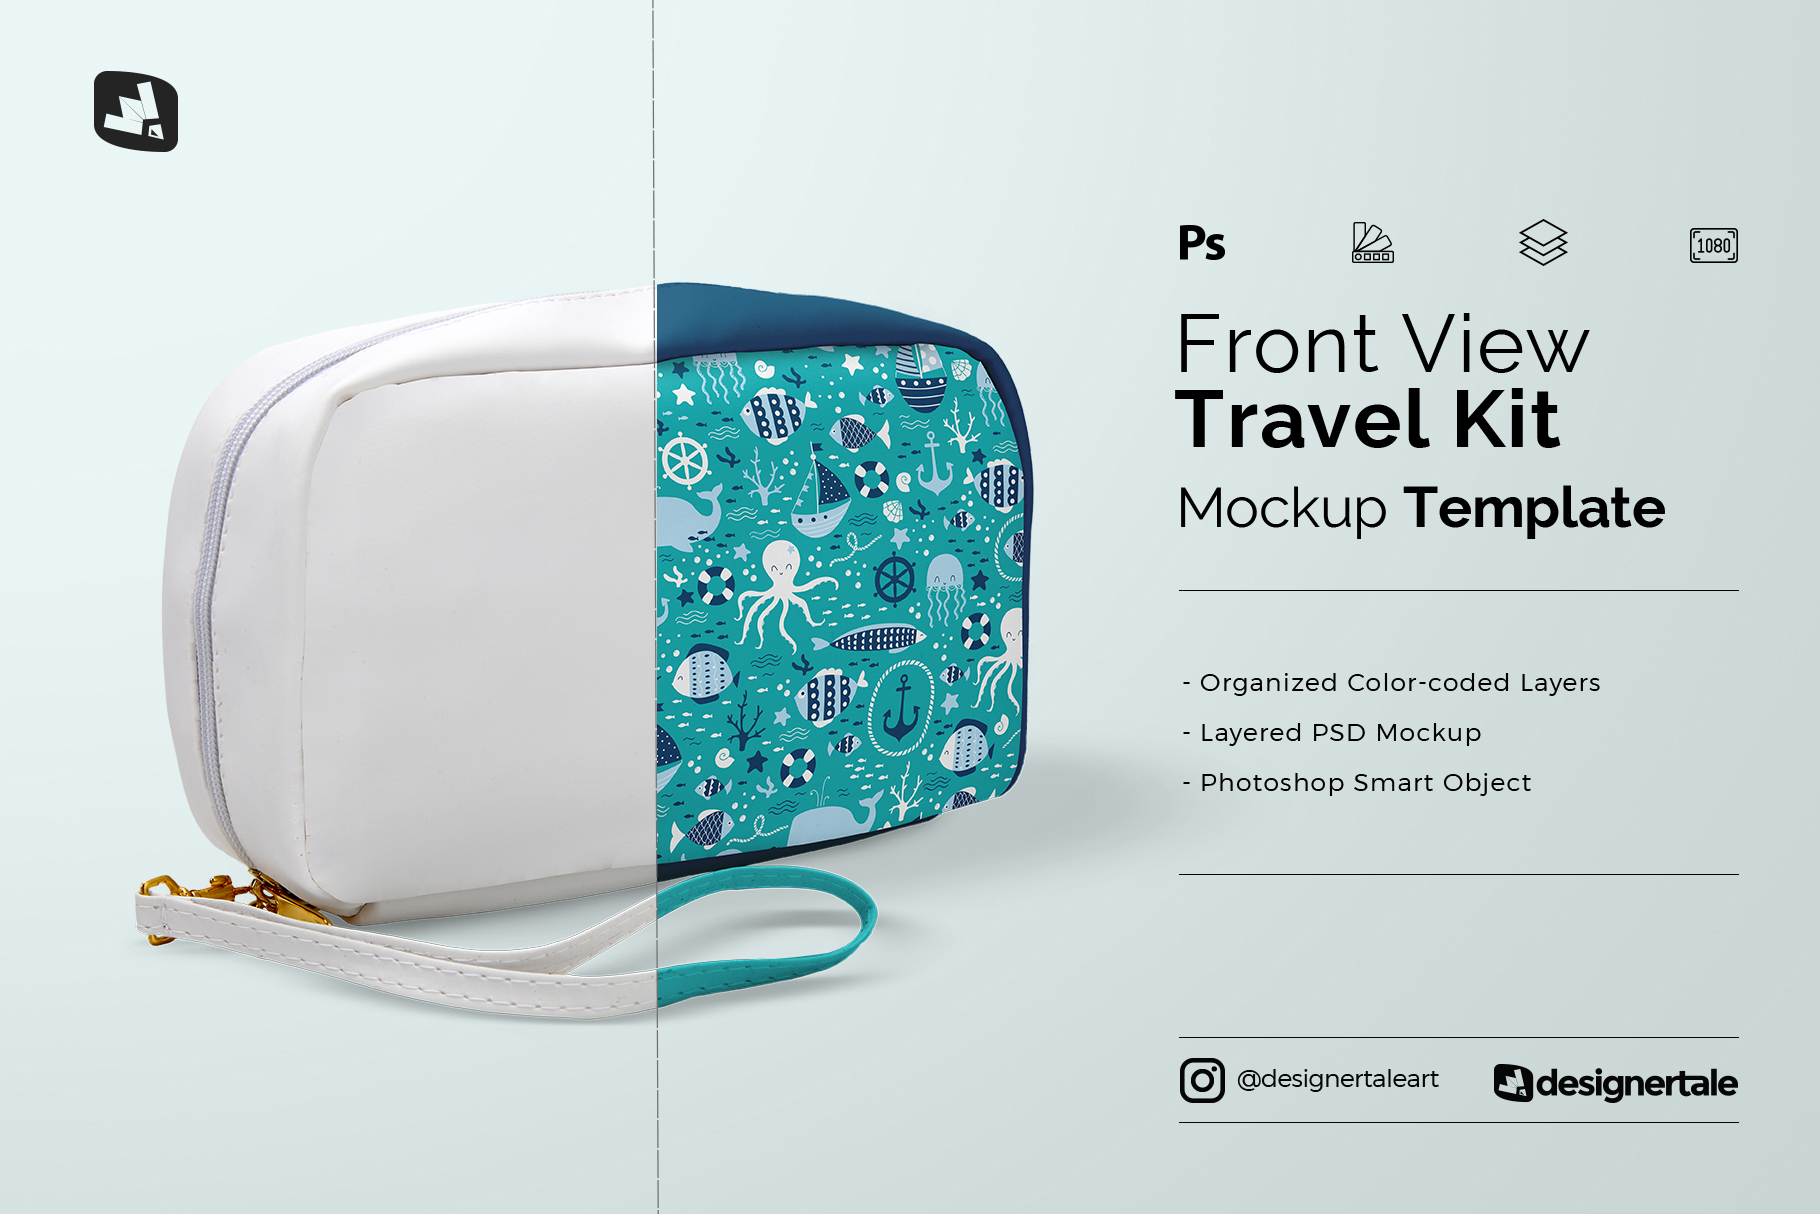 Front View Travel Kit Mockup